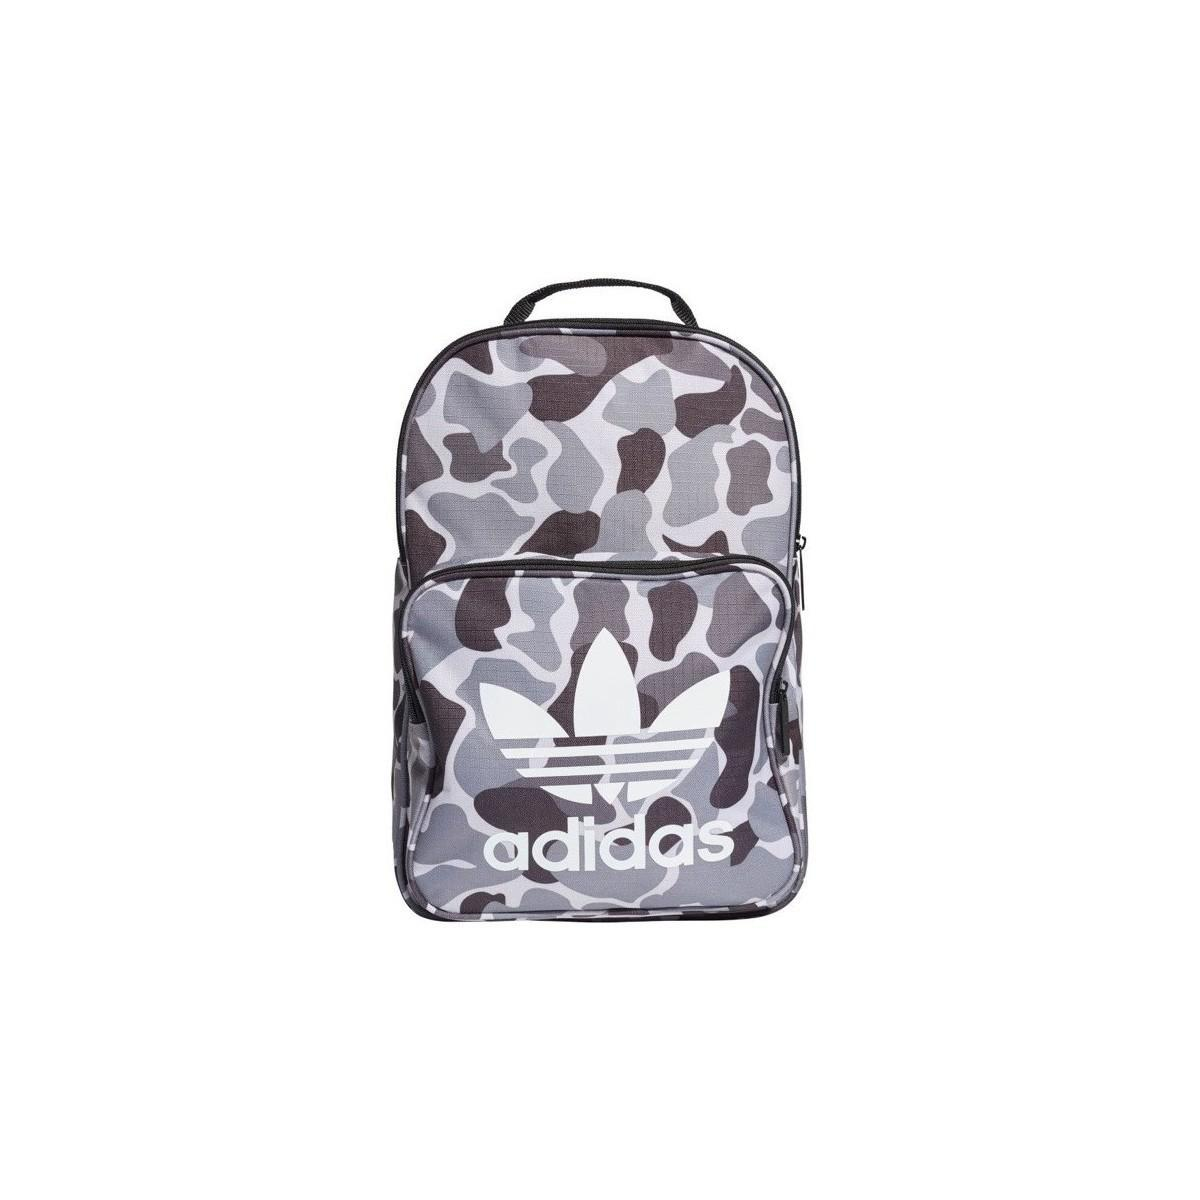 adidas Originals Classic Casual Girls s Children s Backpack In Grey ... 564f5e8275917